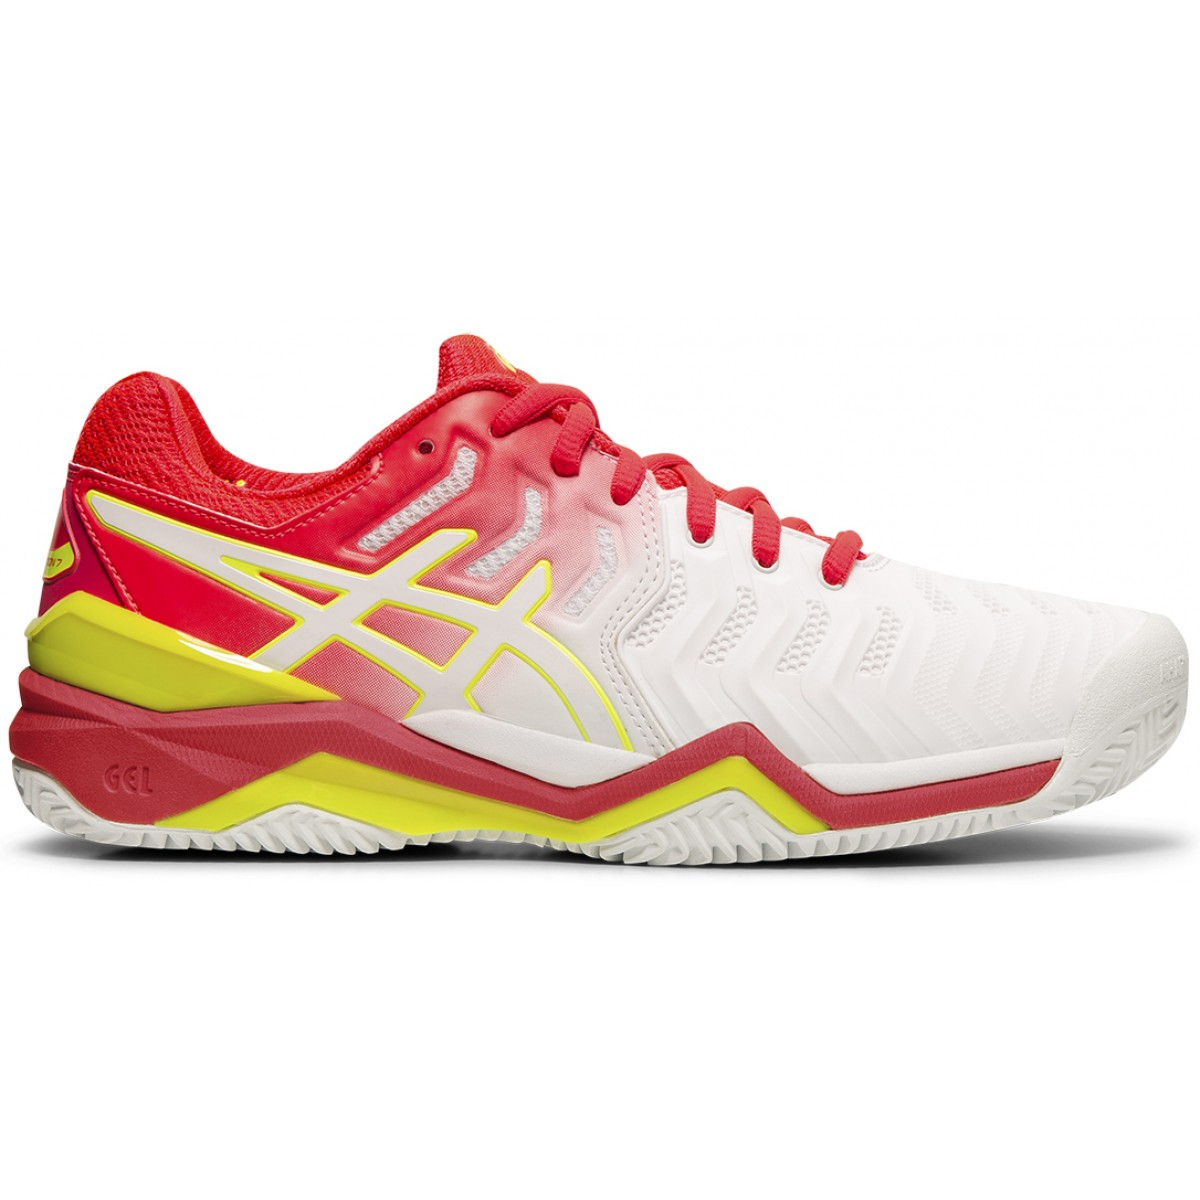 64fe9e97 WOMEN'S ASICS GEL RESOLUTION 7 CLAY COURT SHOES - ASICS - Women's ...